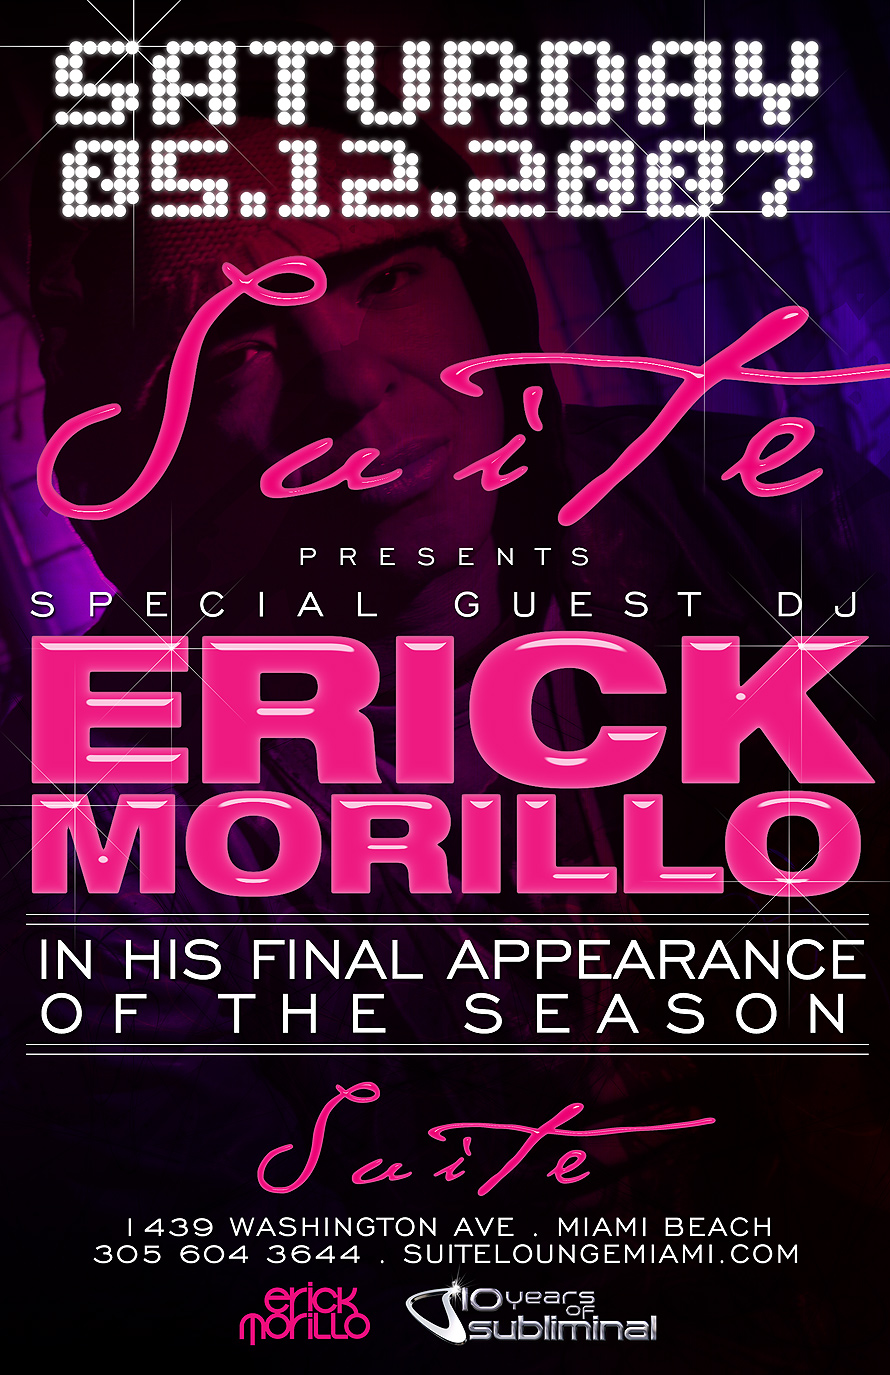 Suite presents Special Guest DJ Erick Morillo